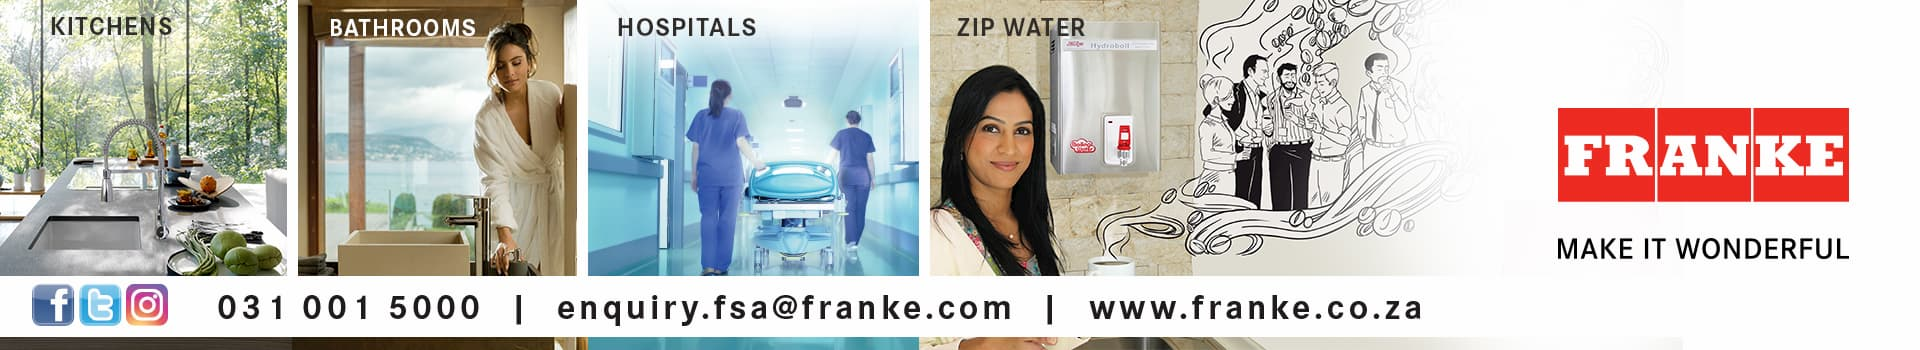 franke banner of sanitary products